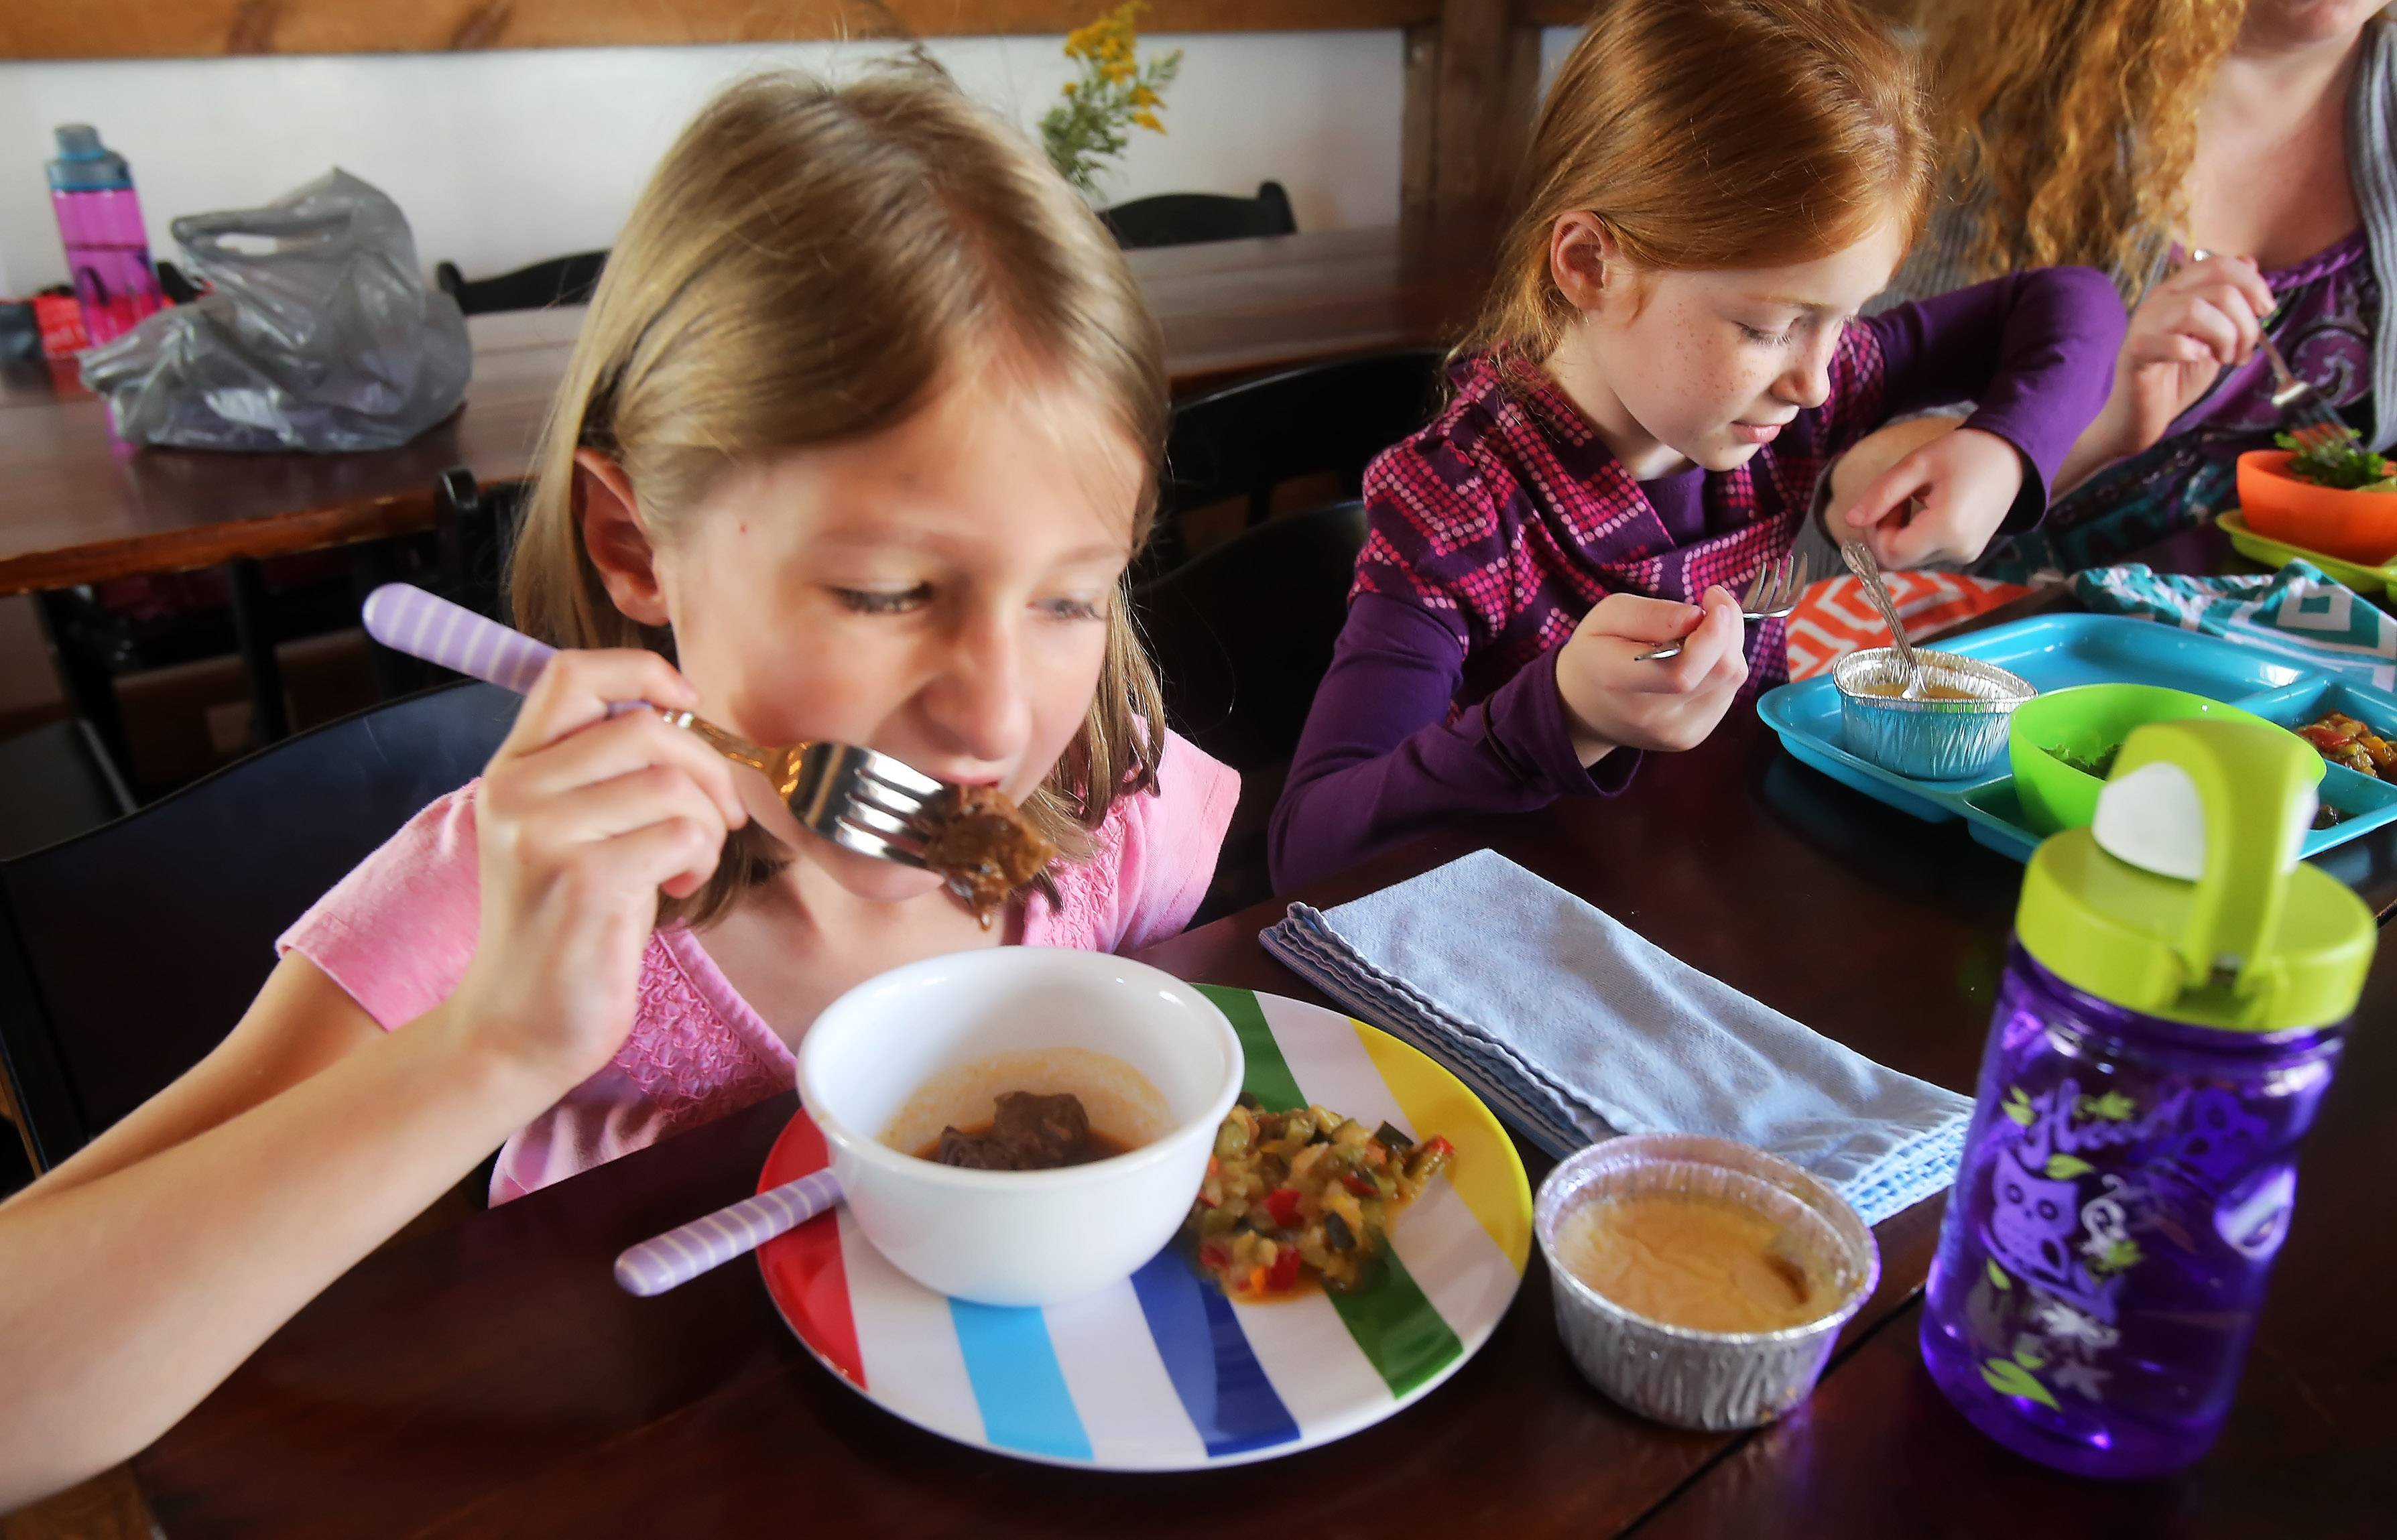 Second graders Grace Muschlitz, left, and Gwyn Johnson eat beef bourguignon and crème caramel for lunch made by Chef Jean-Marc Loustaunau at Prairie Crossing Charter School in Grayslake on Wednesday. The Cafe Pyrenees chef created the meal as part of the school's Farm to Table.